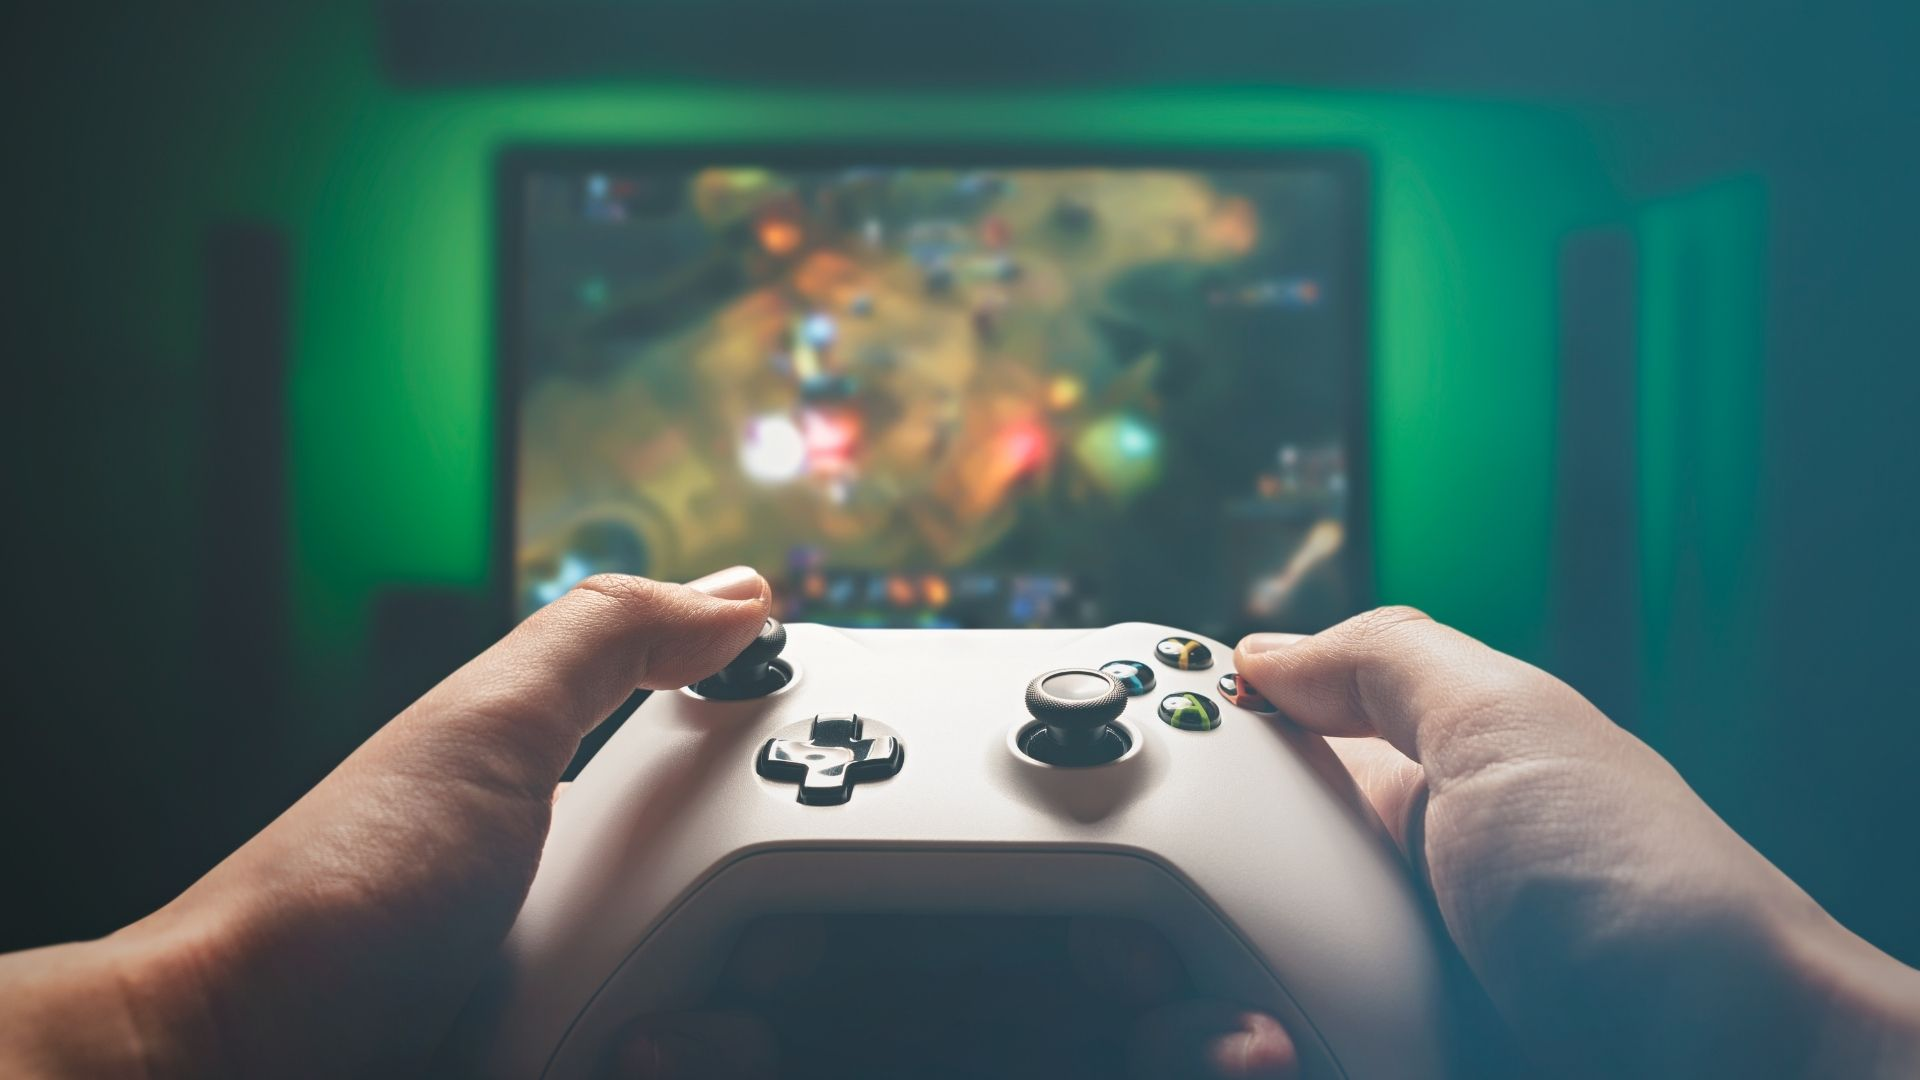 11 More Video Game Marketing Strategies You Can Use Right Now